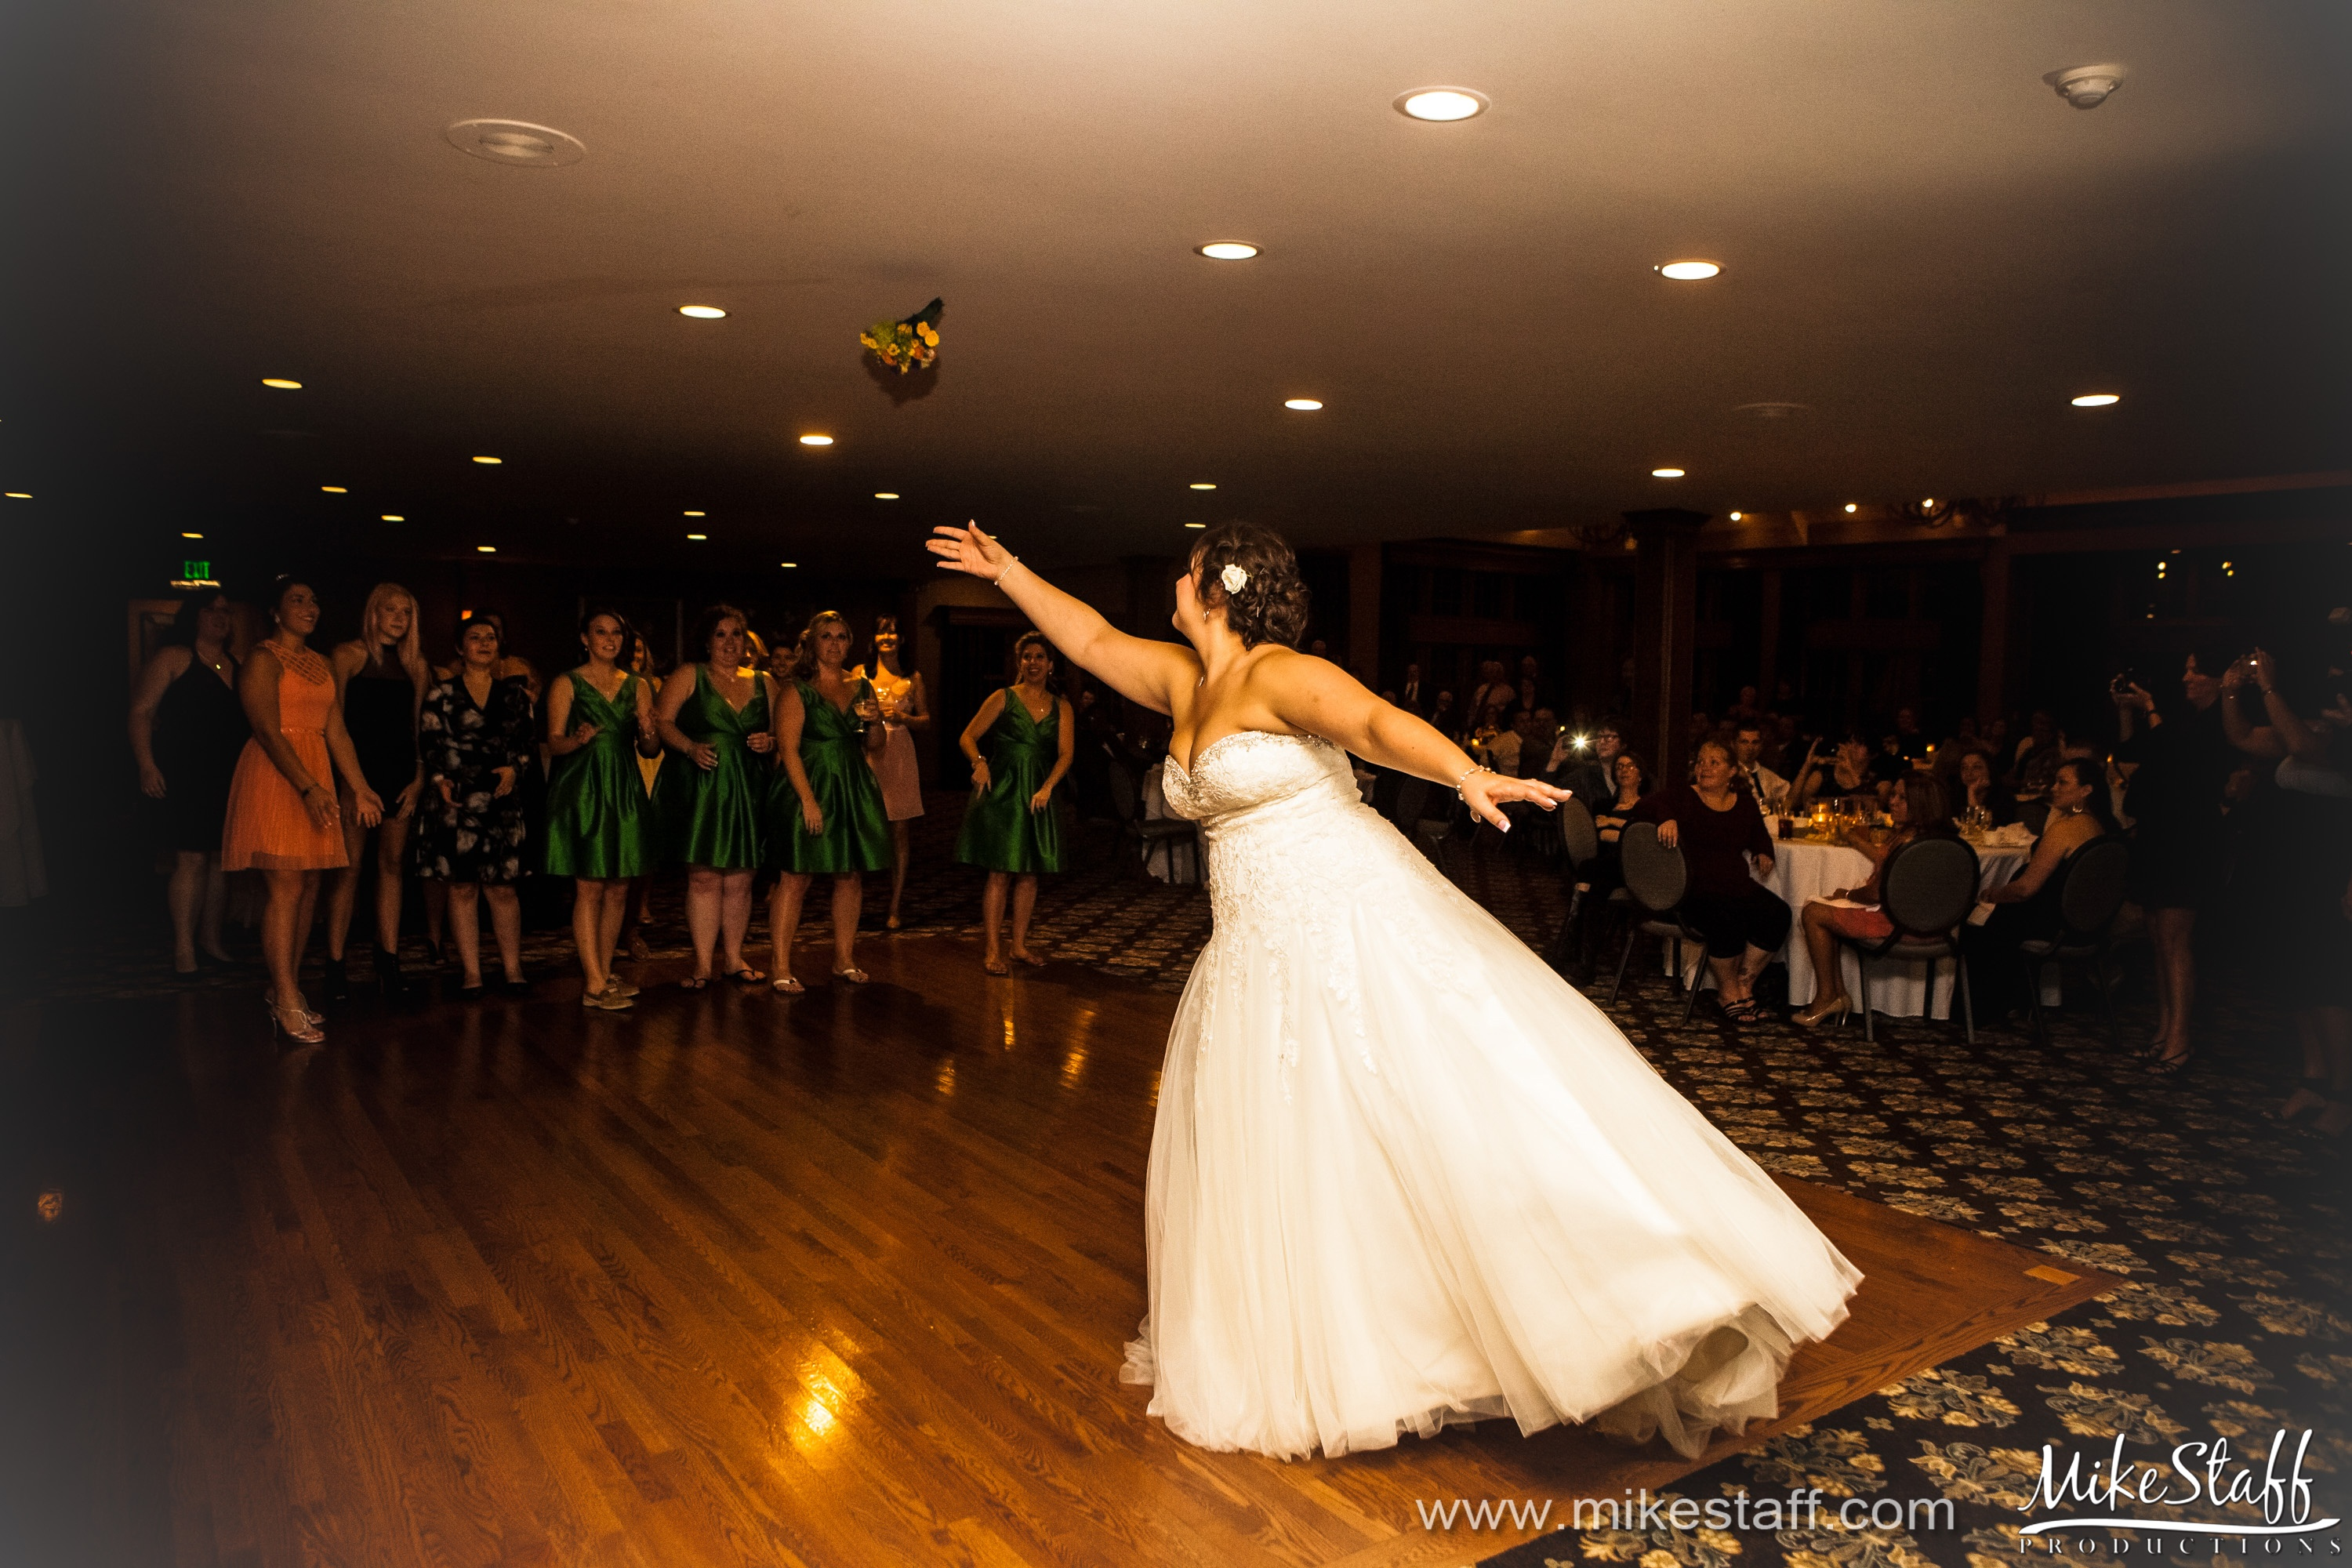 Thats Right Its Time For The Bouquet Toss One Of Those Traditions Just Downright Fun Your Guests To Watch With That Being Said